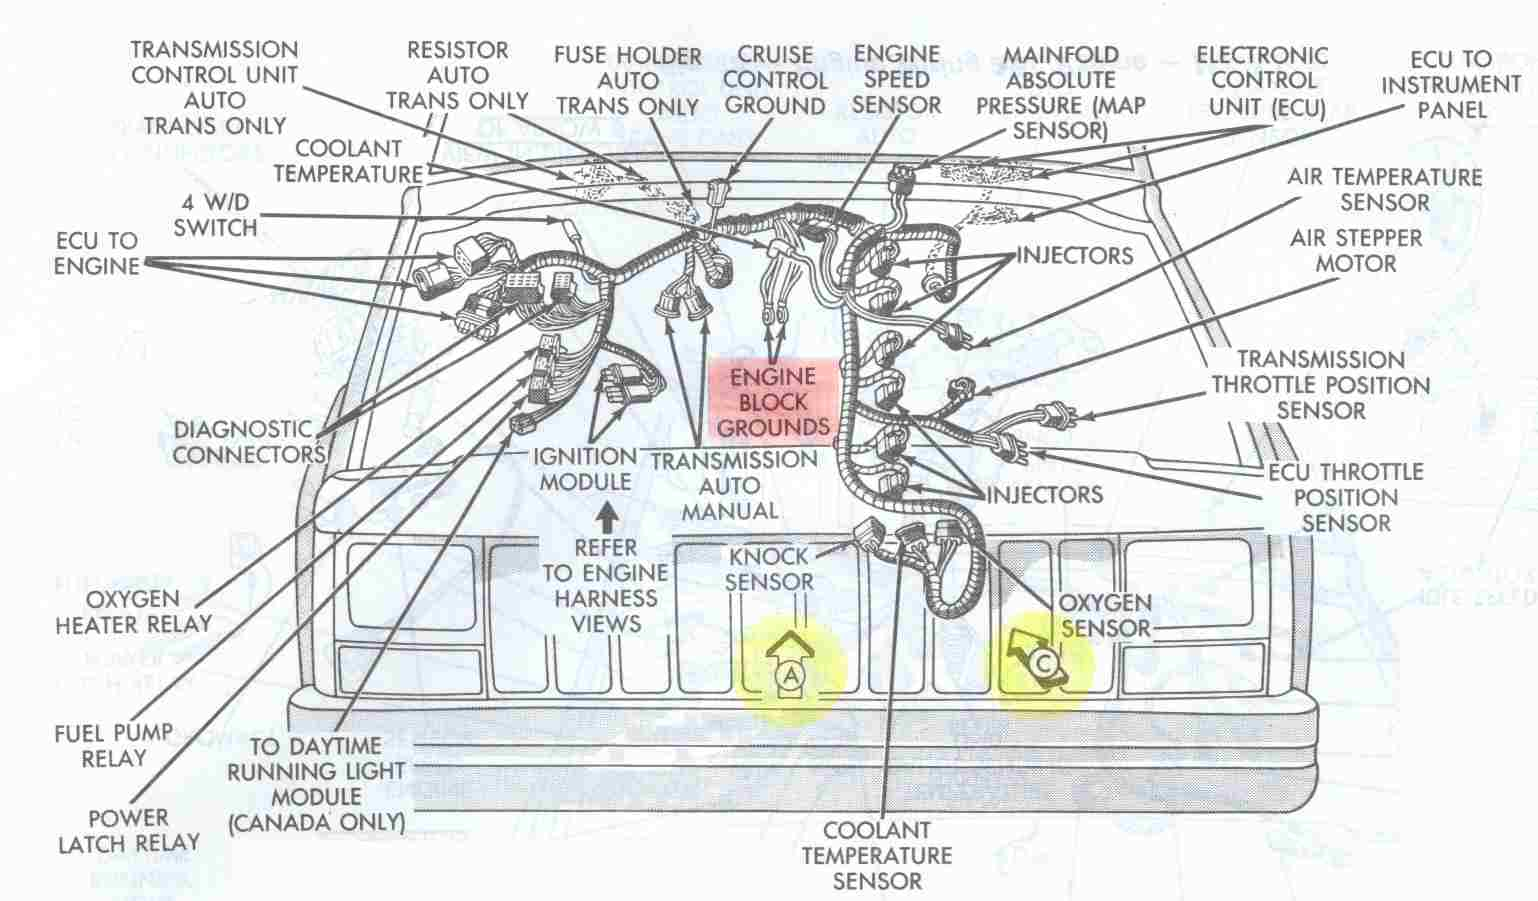 Electrical_Engine_Ground_Points_Overview jeep cherokee electrical diagnosing erratic behavior of engine 1999 Jeep Cherokee Serpentine Belt Diagram at cos-gaming.co